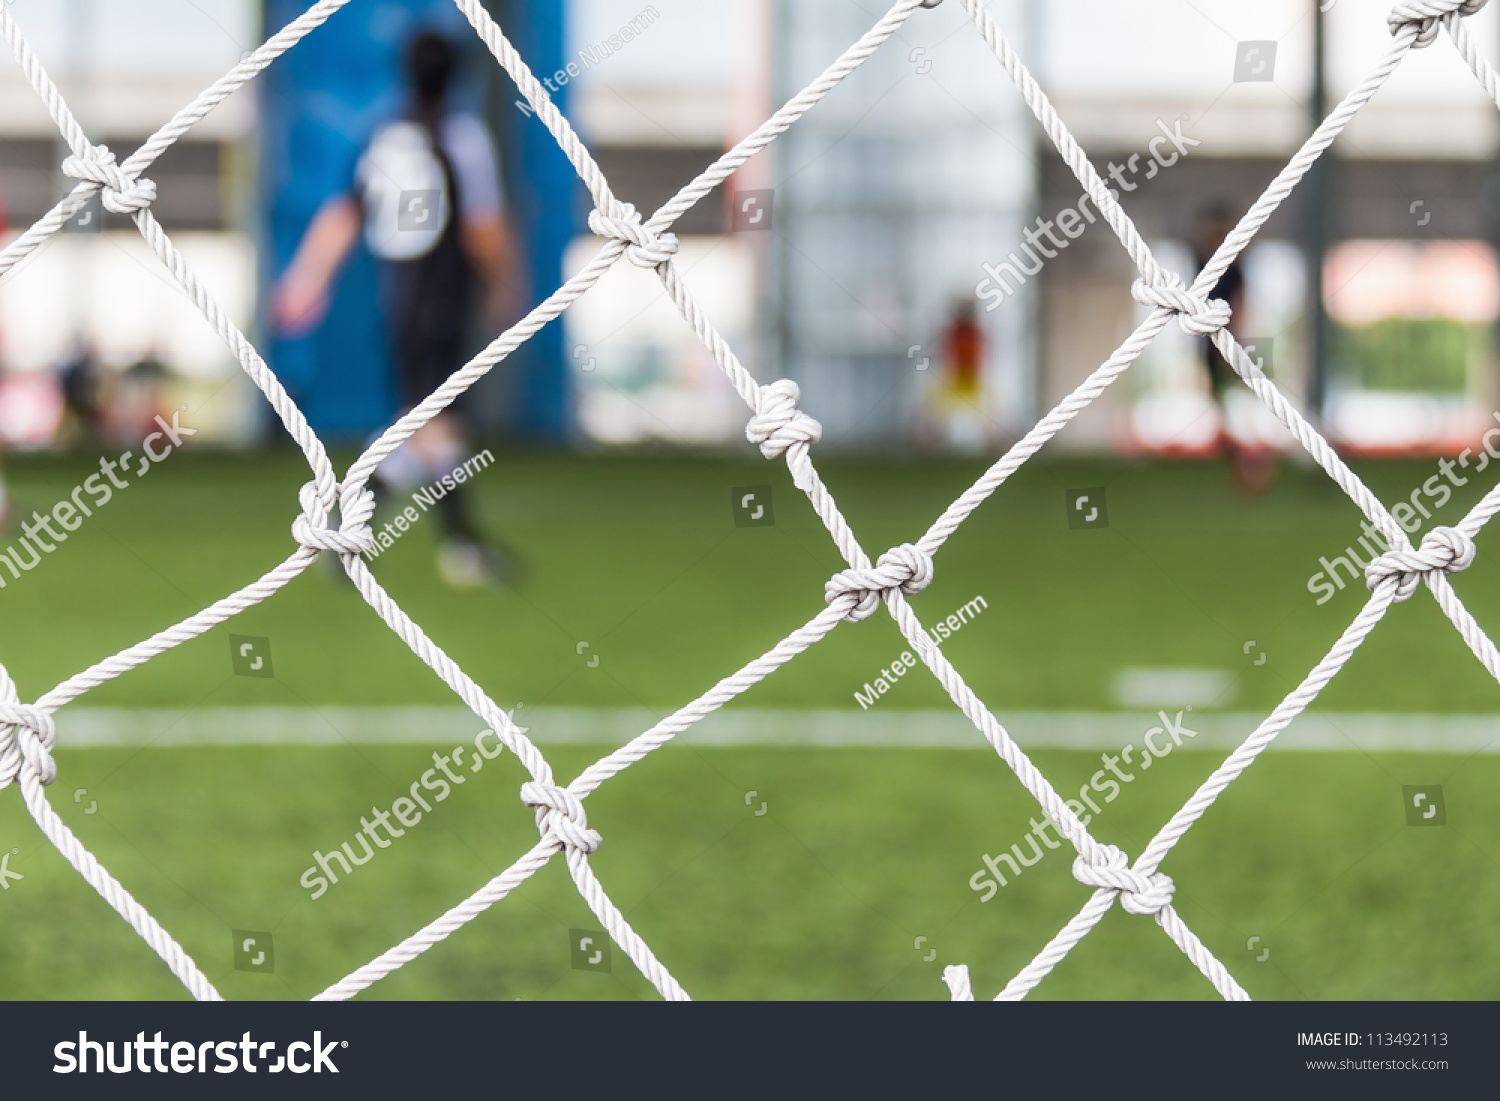 Close Up Of Football Or Soccer Goal Net In The Indoor Soccer Pitch